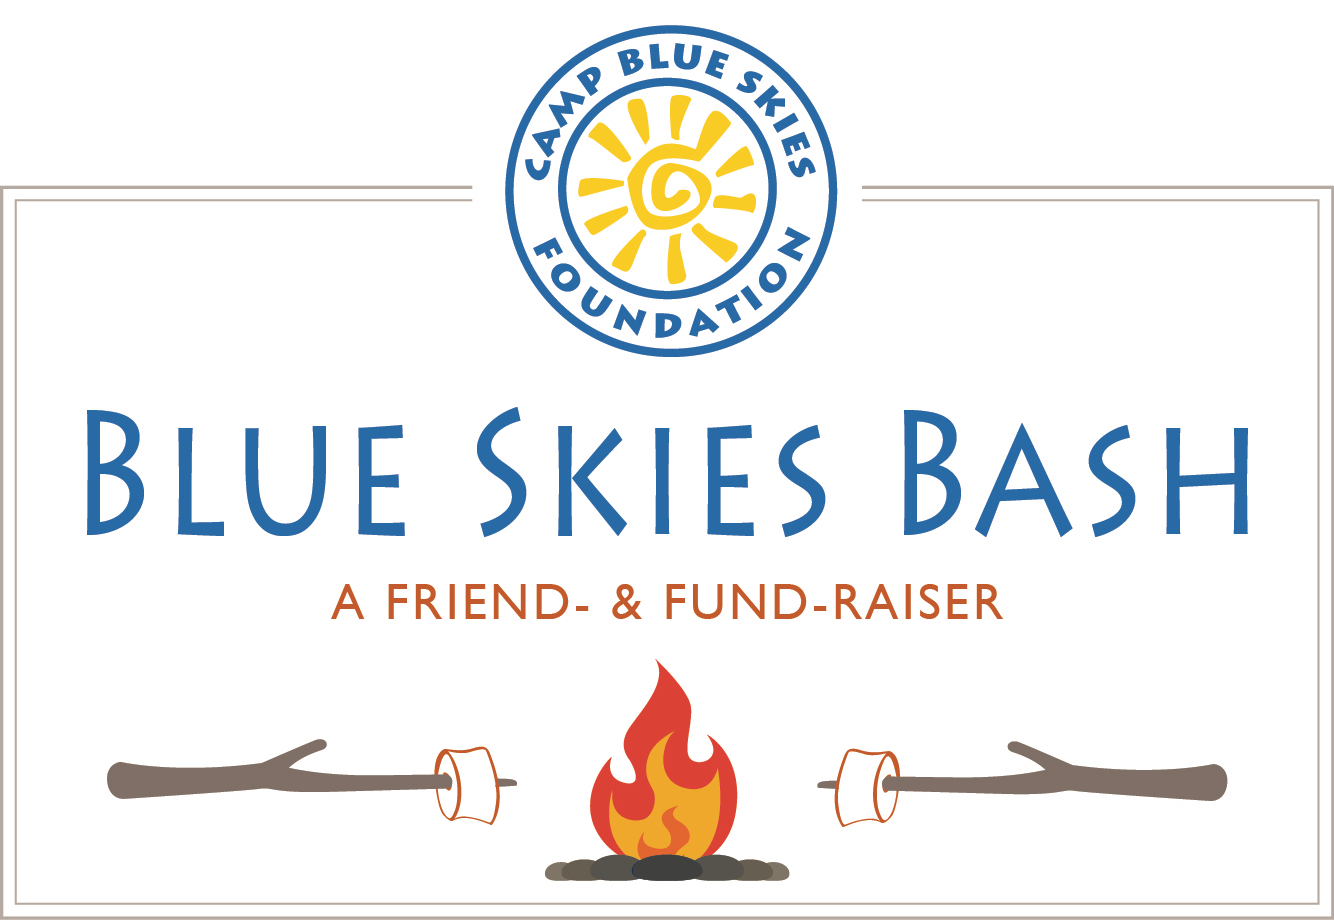 Blue Skies Bash logo FINAL.jpg